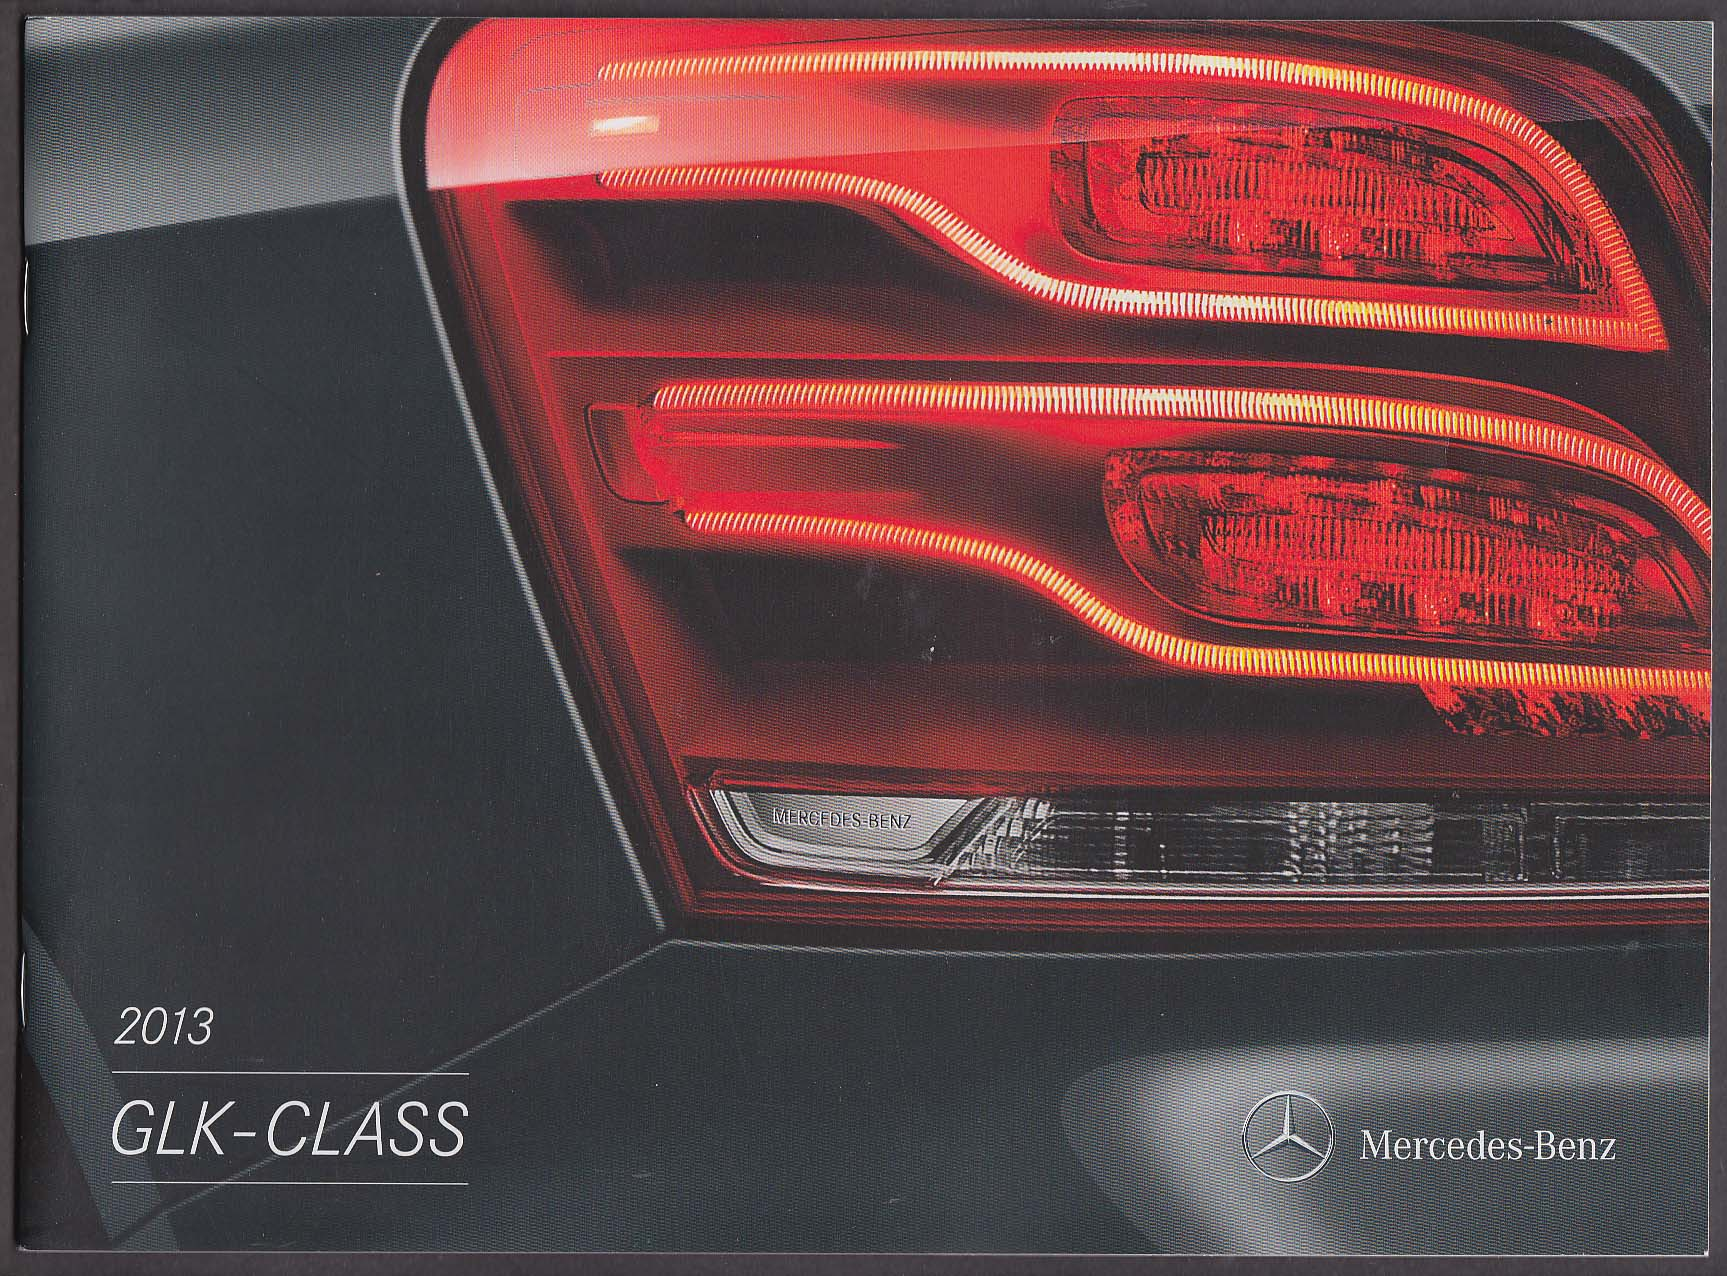 2013 Mercedes-Benz GLK-Class sales catalog